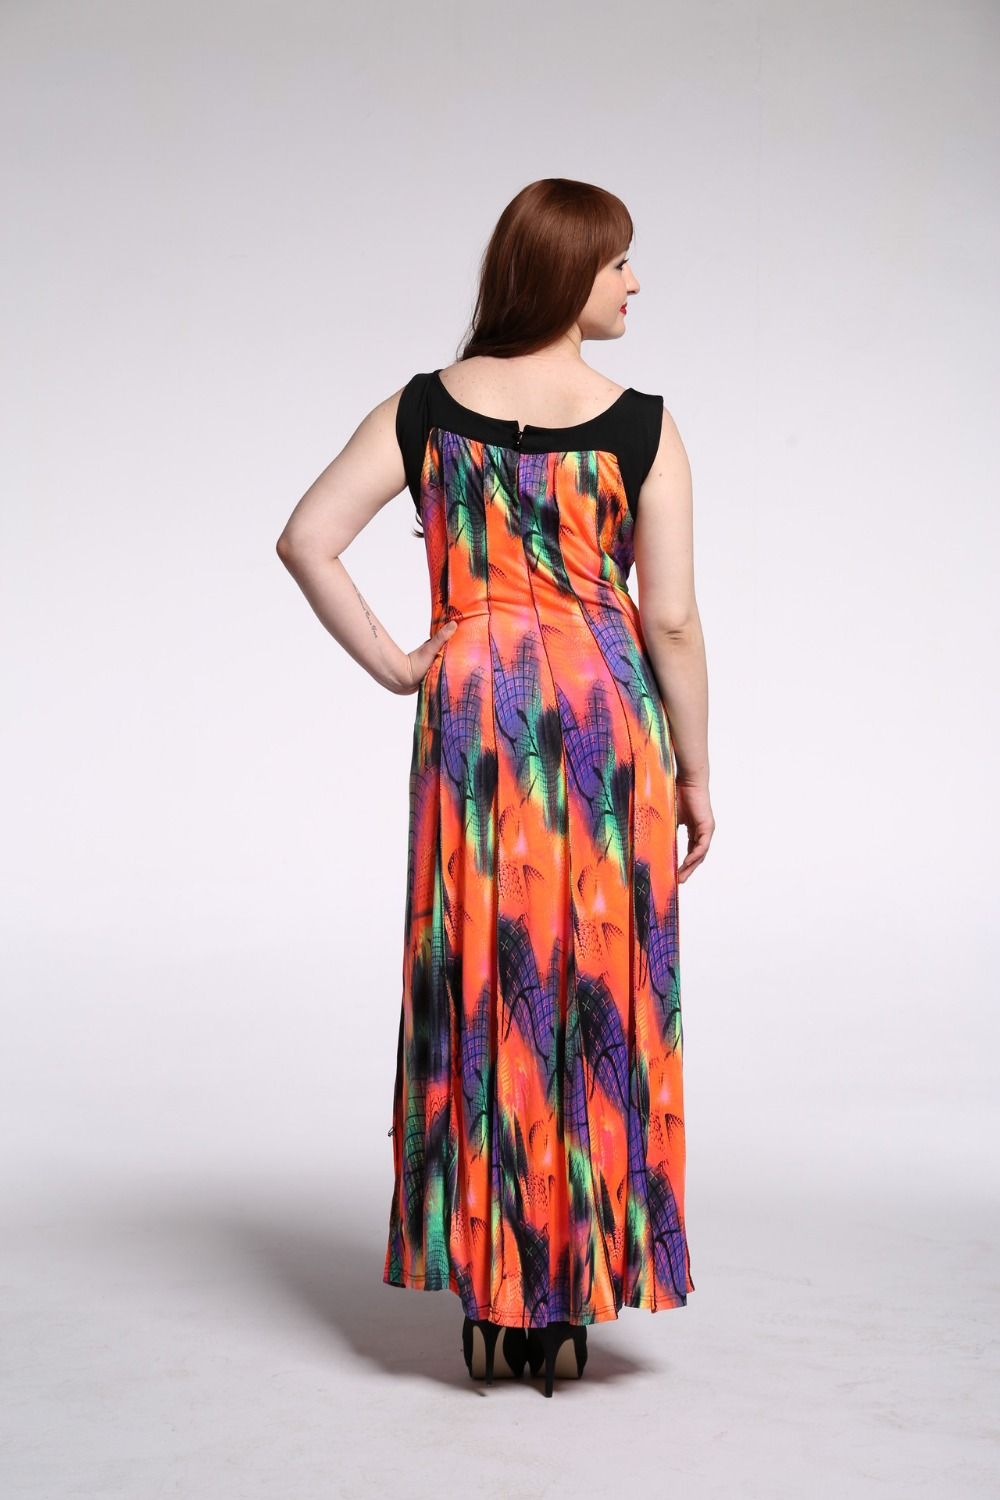 Brand New Summer Bohemian Dress Feather Printed Casual Pleated Beach  Dresses Plus Size 7XL 6XL 5XL Long Maxi Dress Party Dresses-in Dresses from  Women s ... 276ff76d14ef